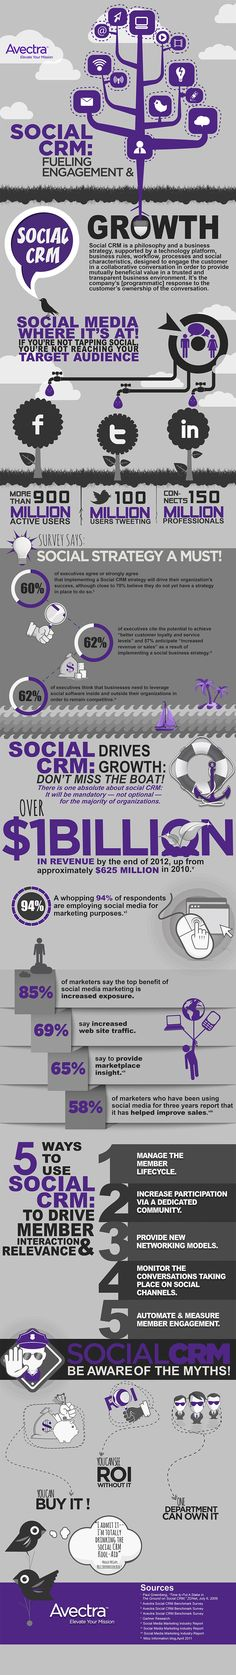 Social CRM Fuels Engagement and Growth #infographic - Customer relationship management (CRM) is a widely implemented model for managing a company's interactions with customers, clients, and sales prospects. It involves using technology to organize, automate, and synchronize business processes—principally sales activities, but also those for marketing, customer service, and technical support.